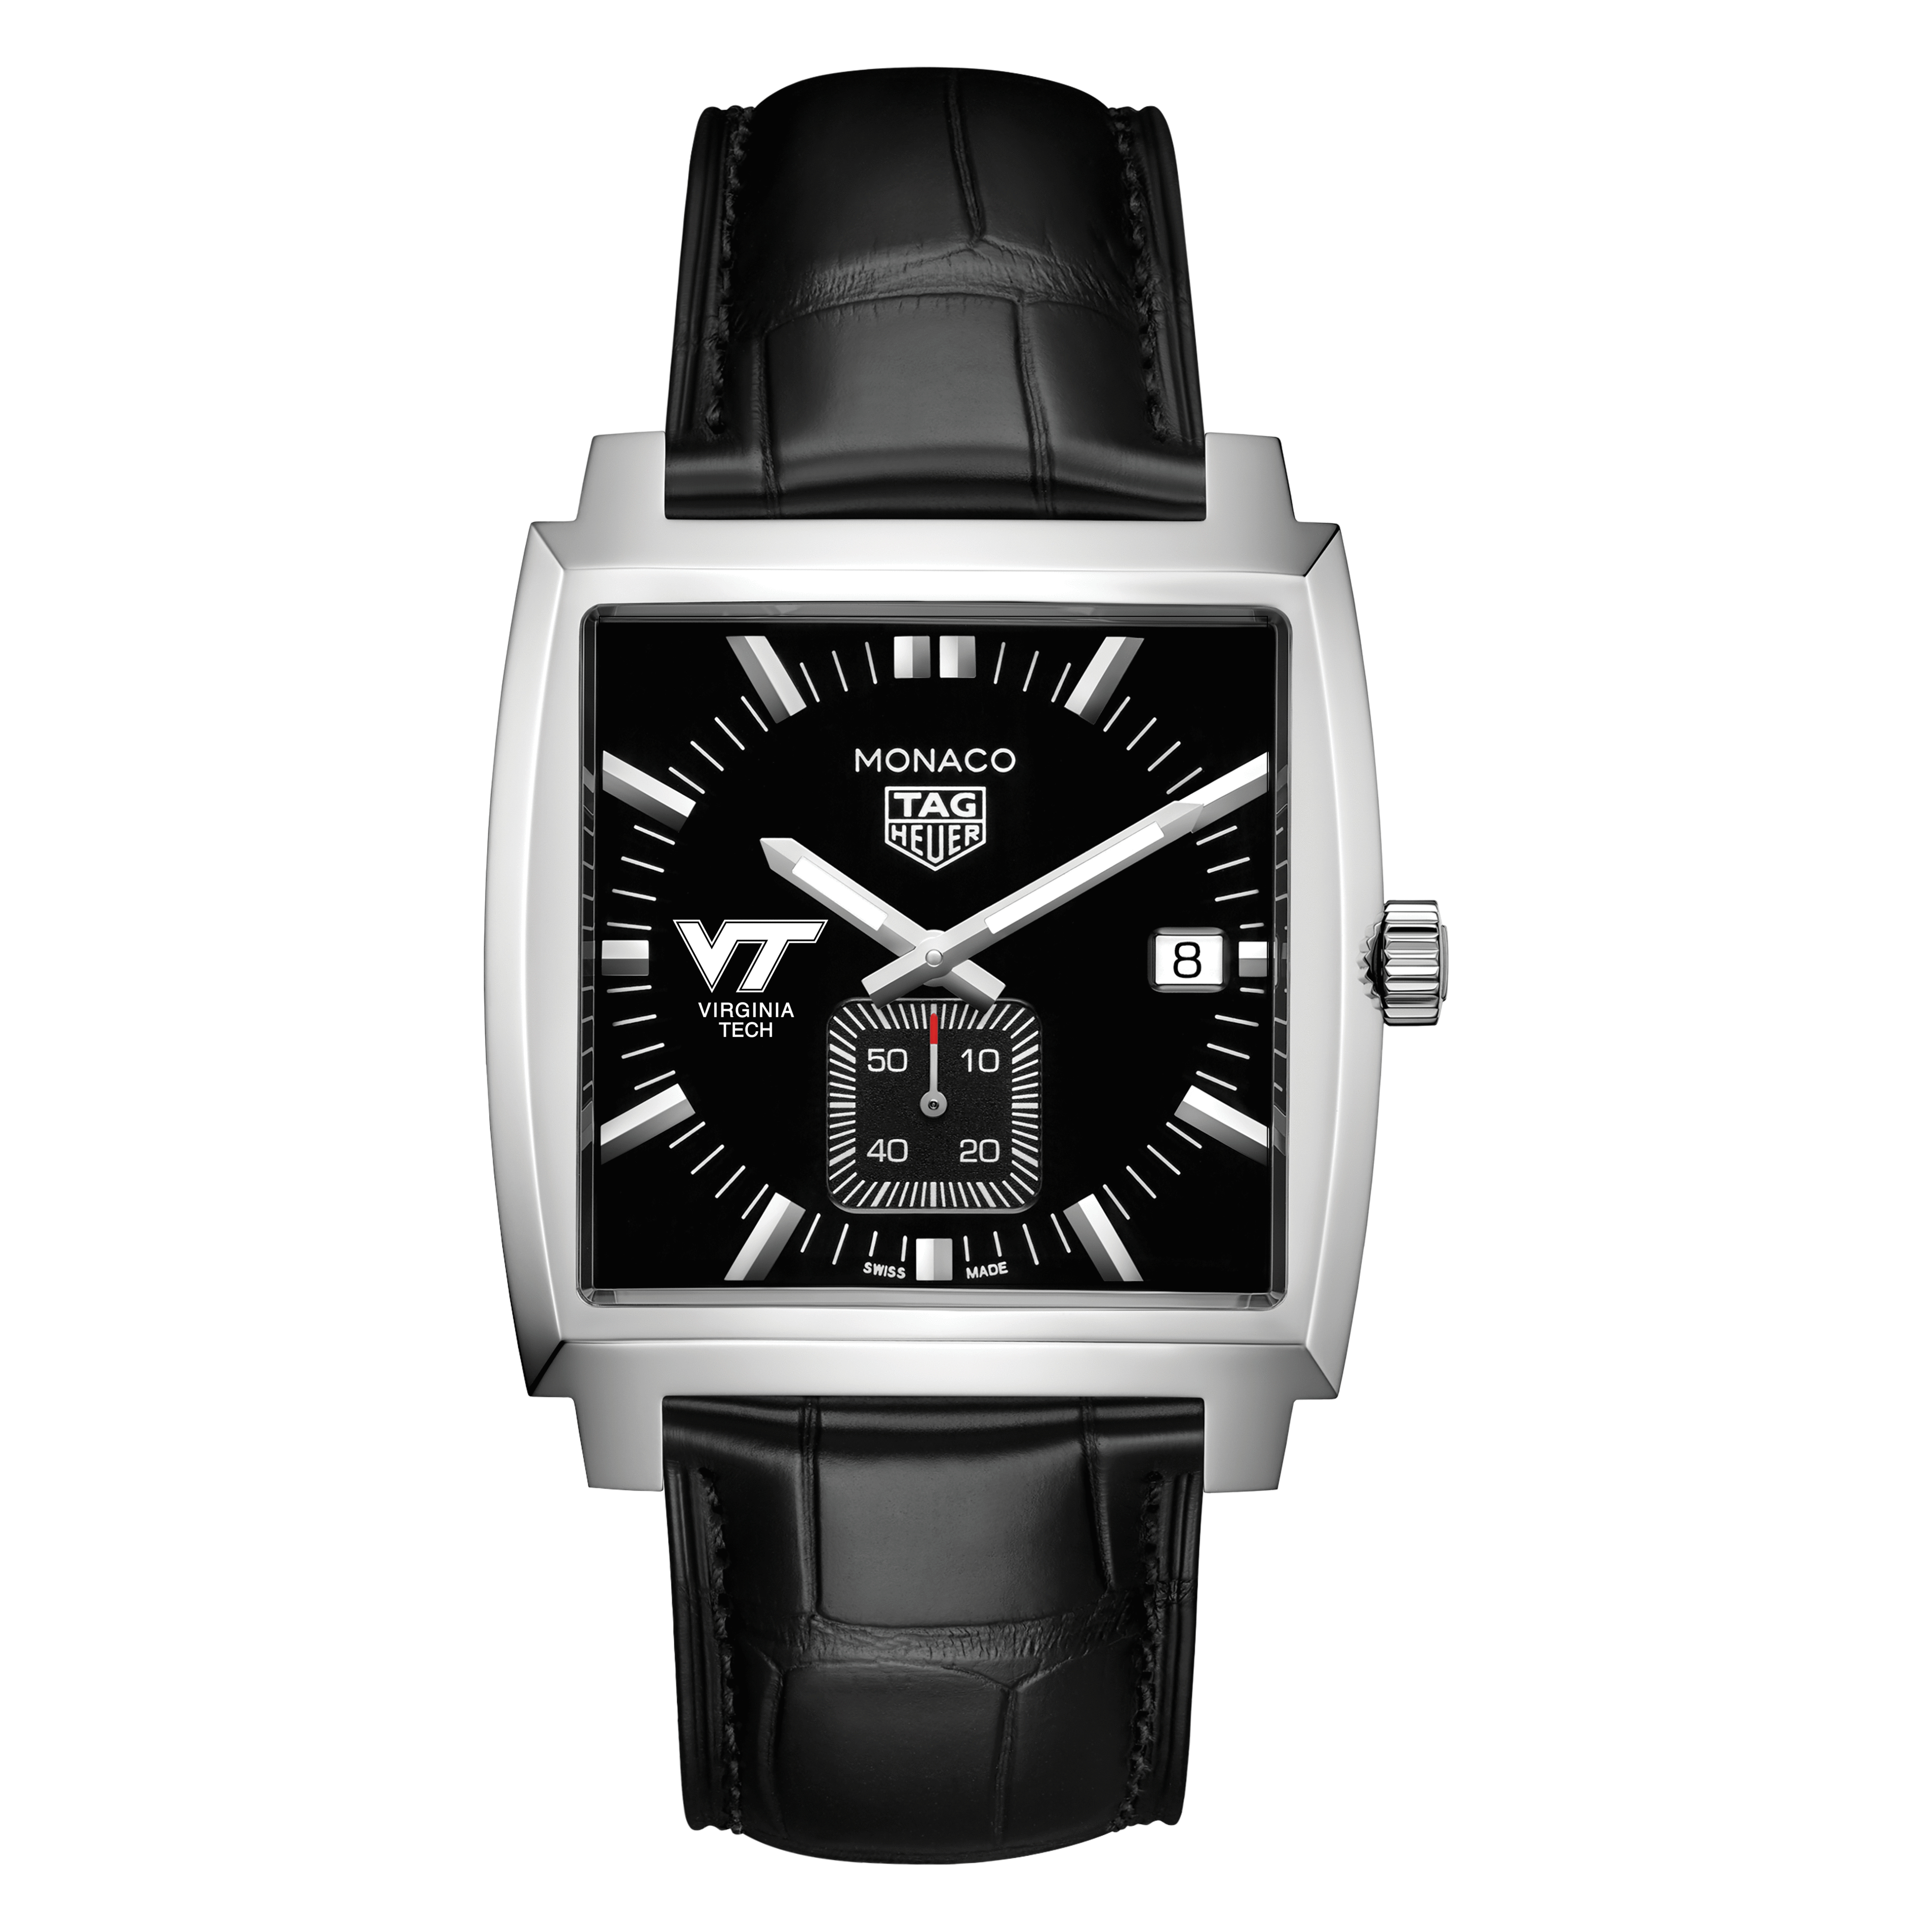 Virginia Tech TAG Heuer Monaco with Quartz Movement for Men - Image 2